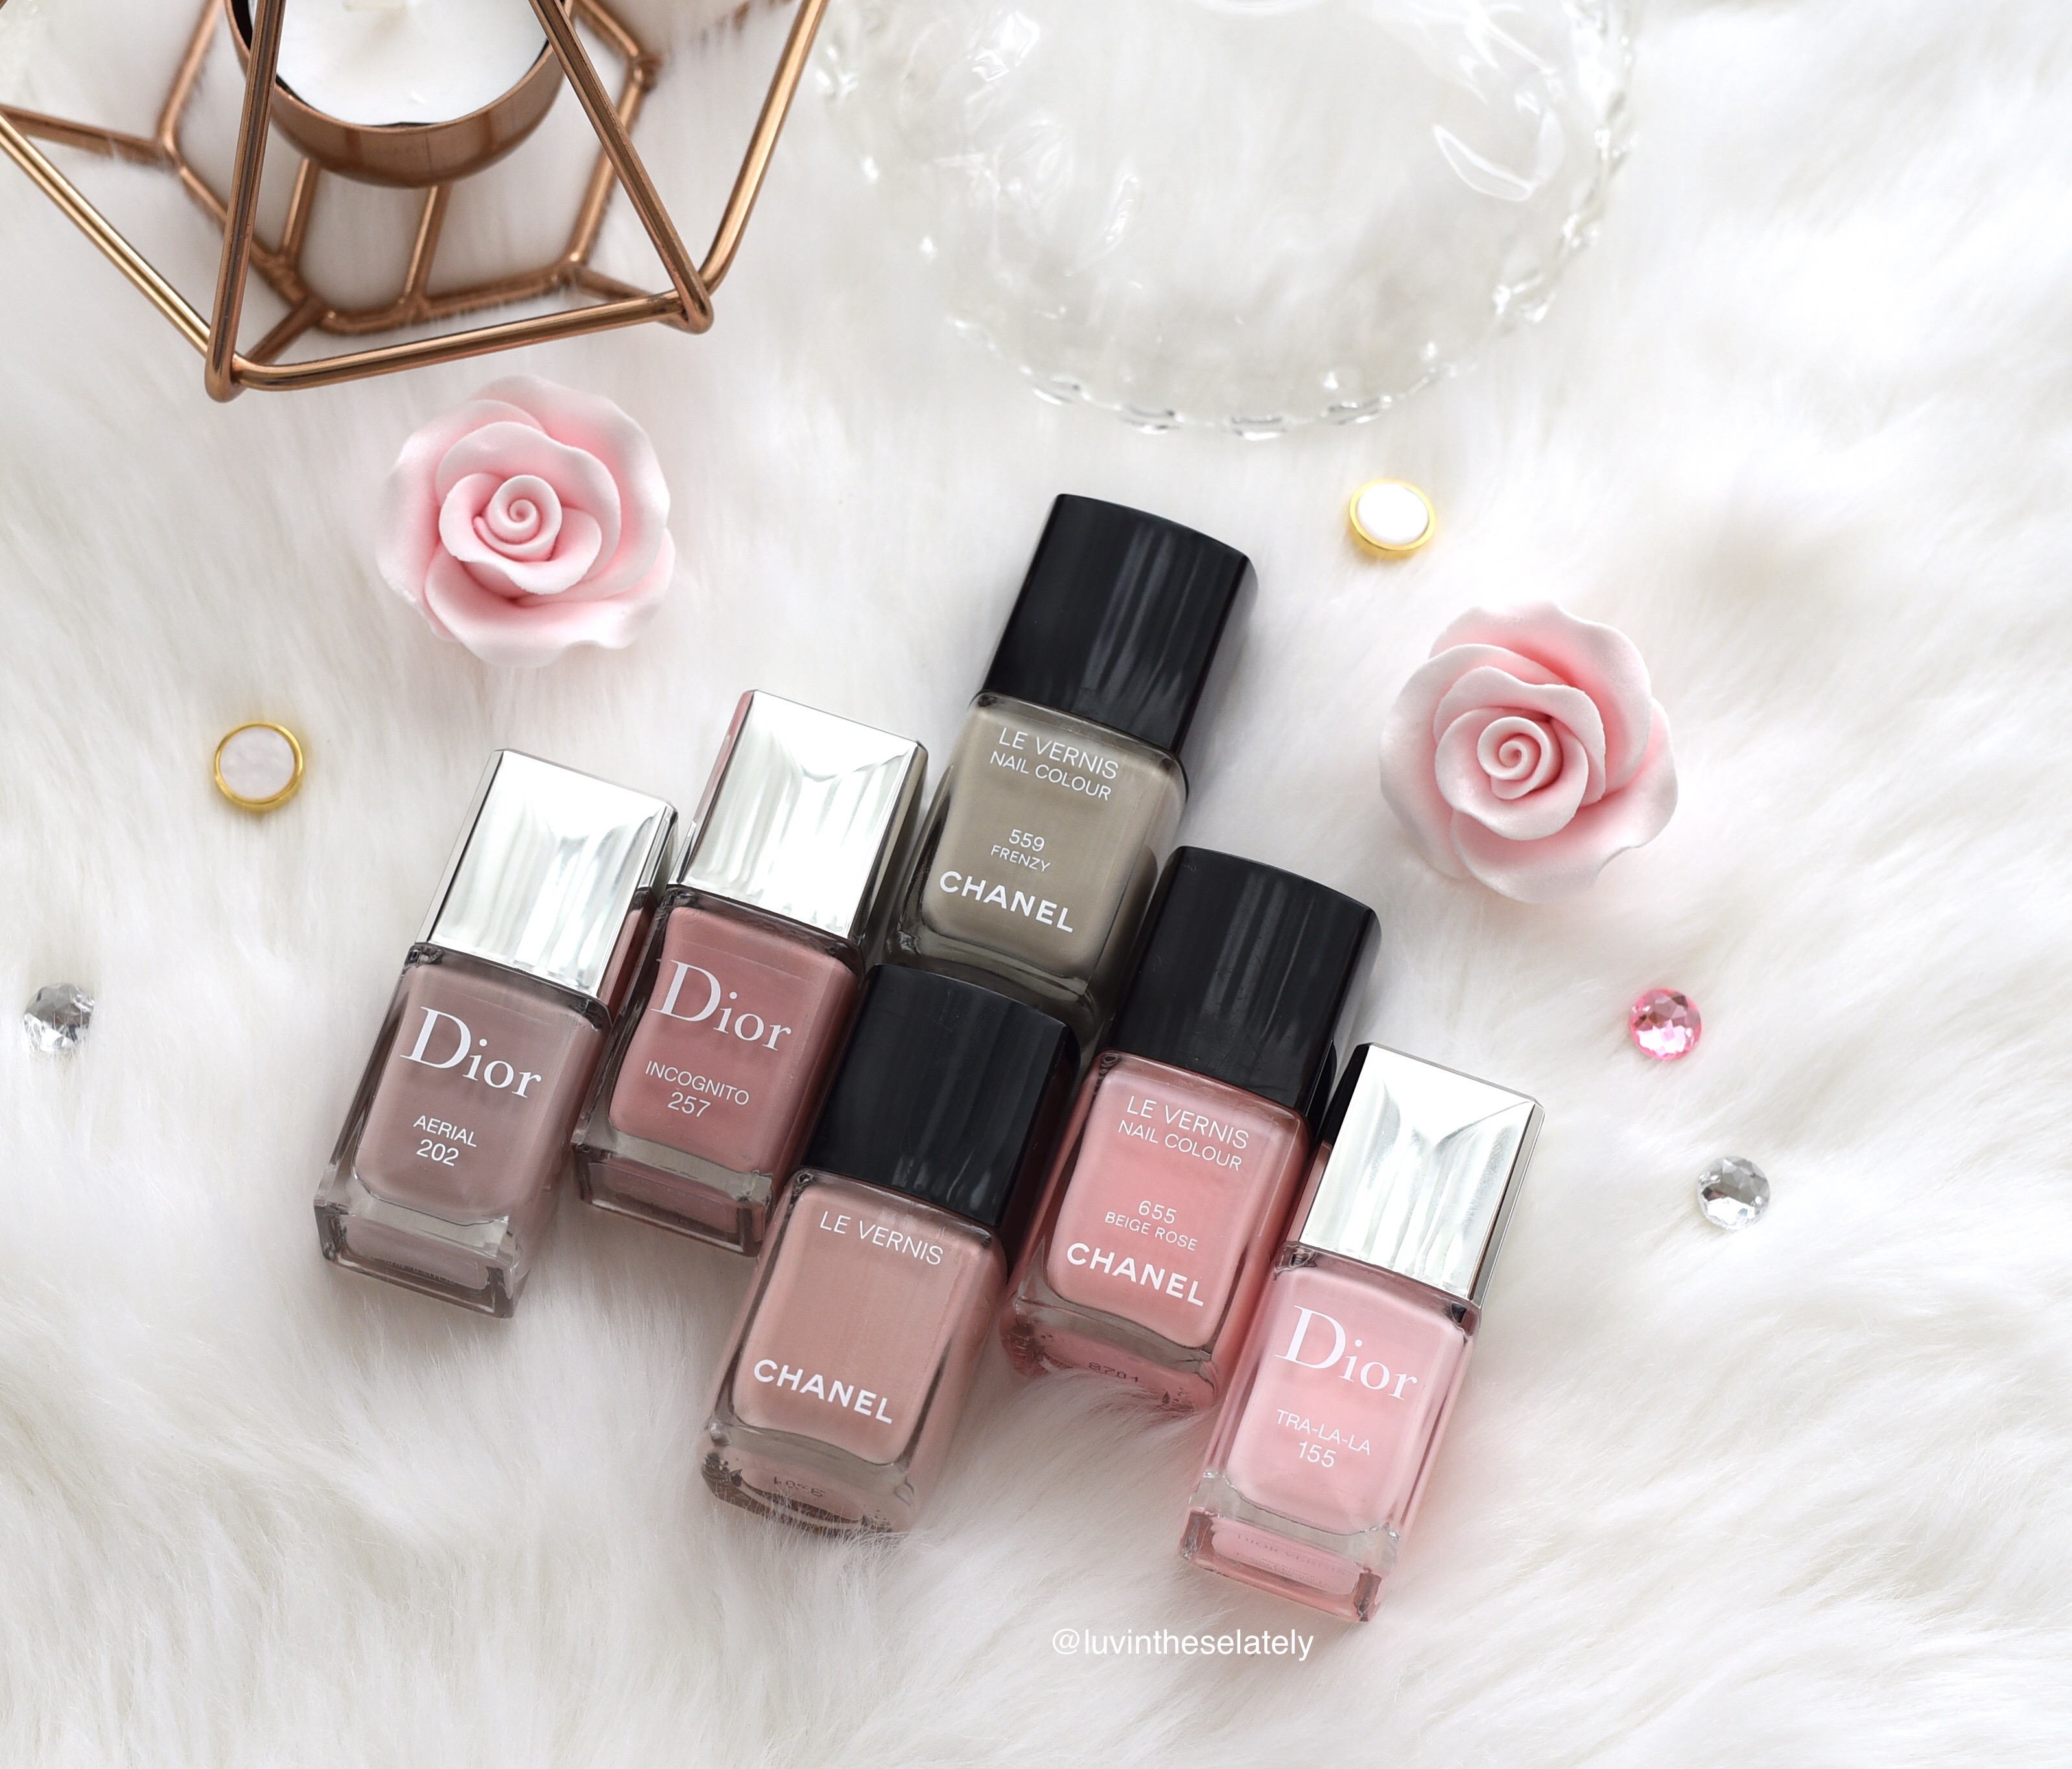 Luvinthese16in2016 Dior Vernis And Chanel Le Vernis